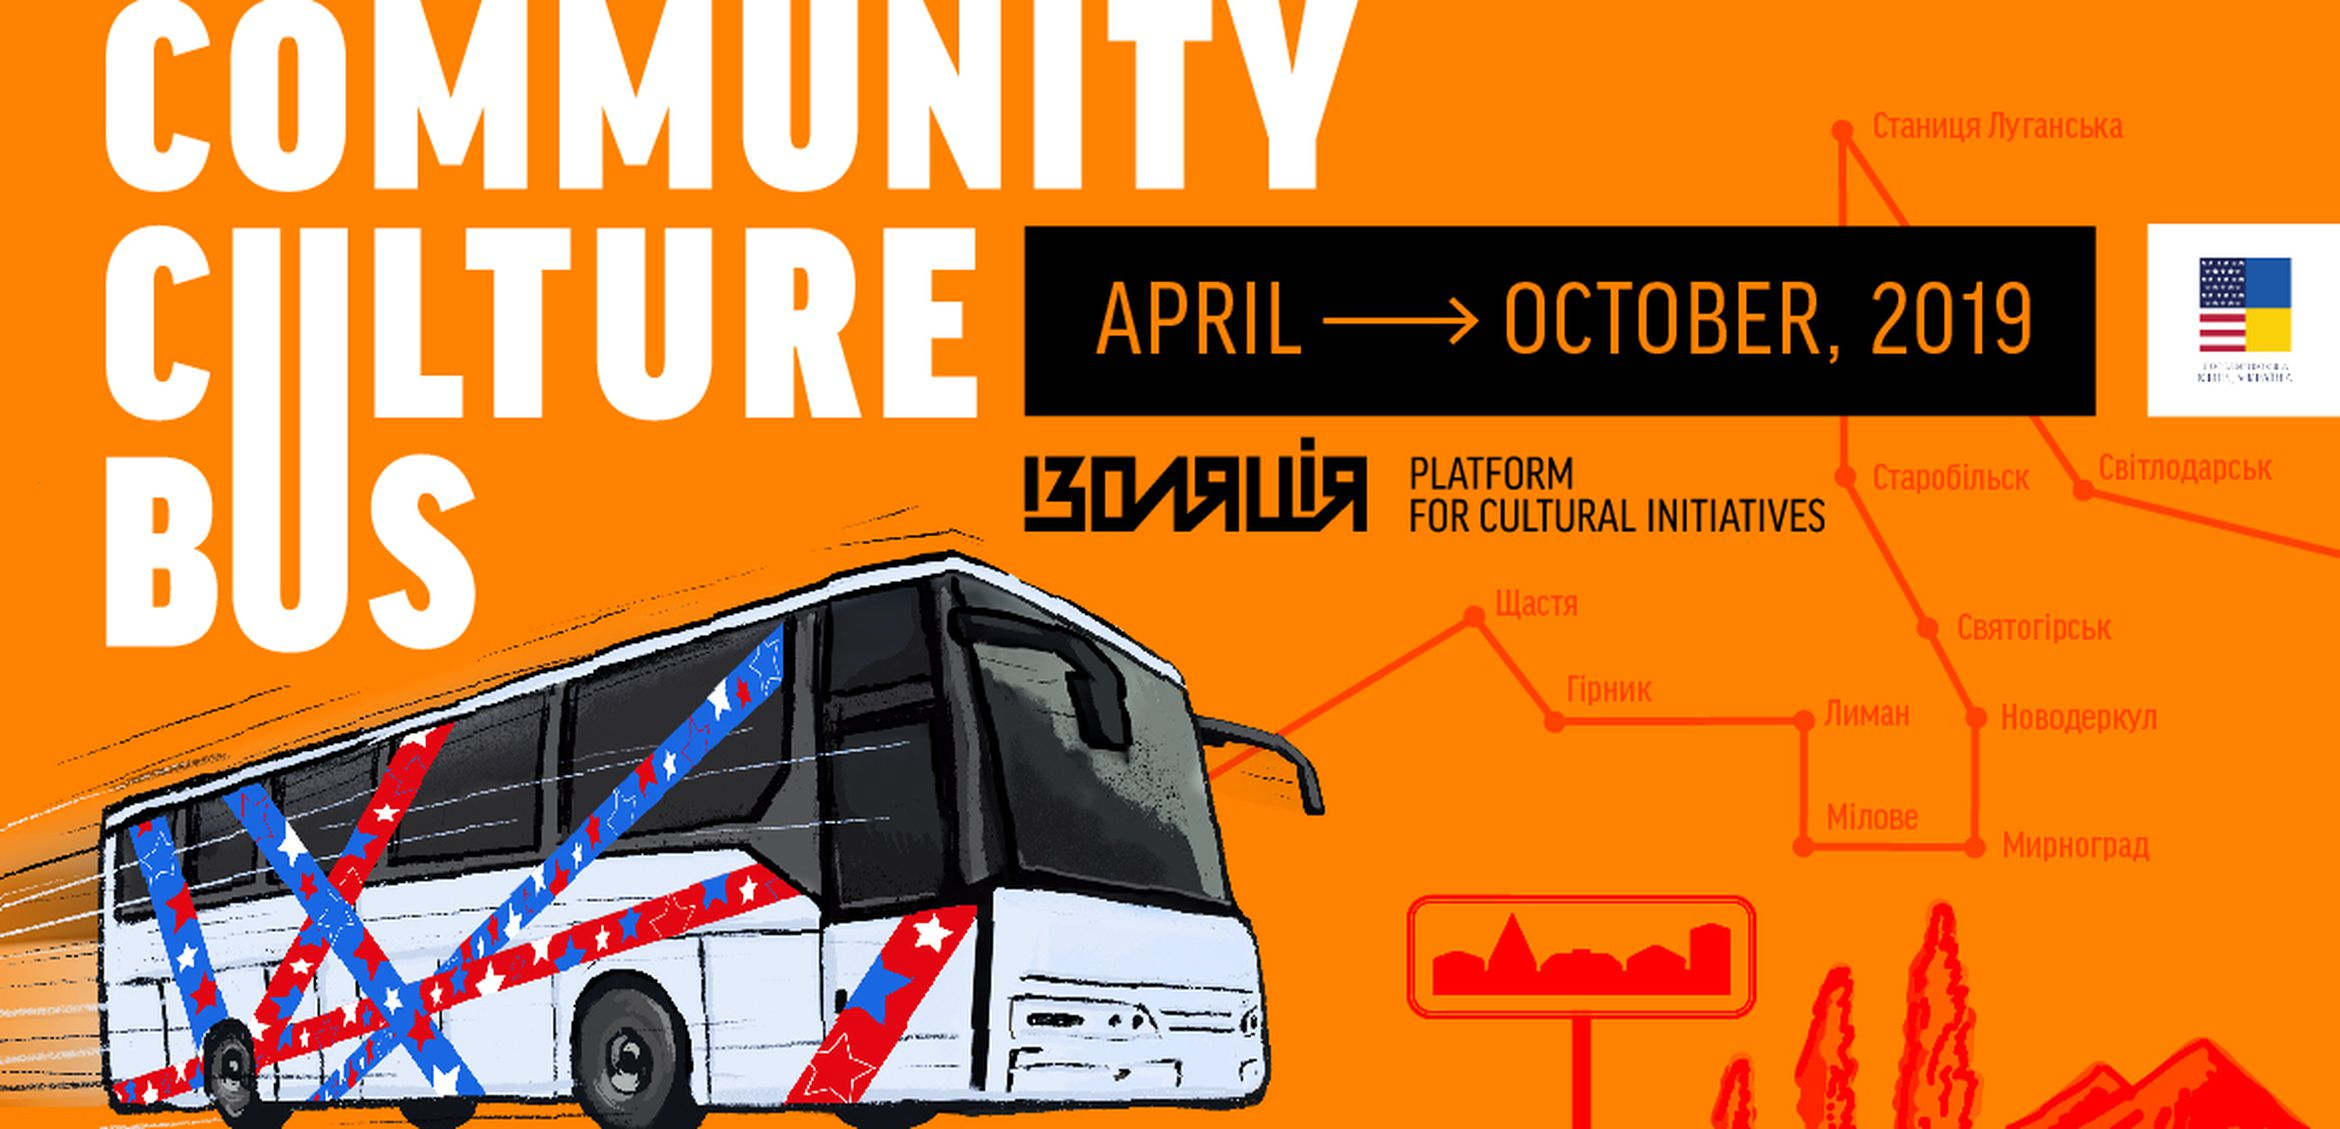 Community Culture Bus / Gurtobus